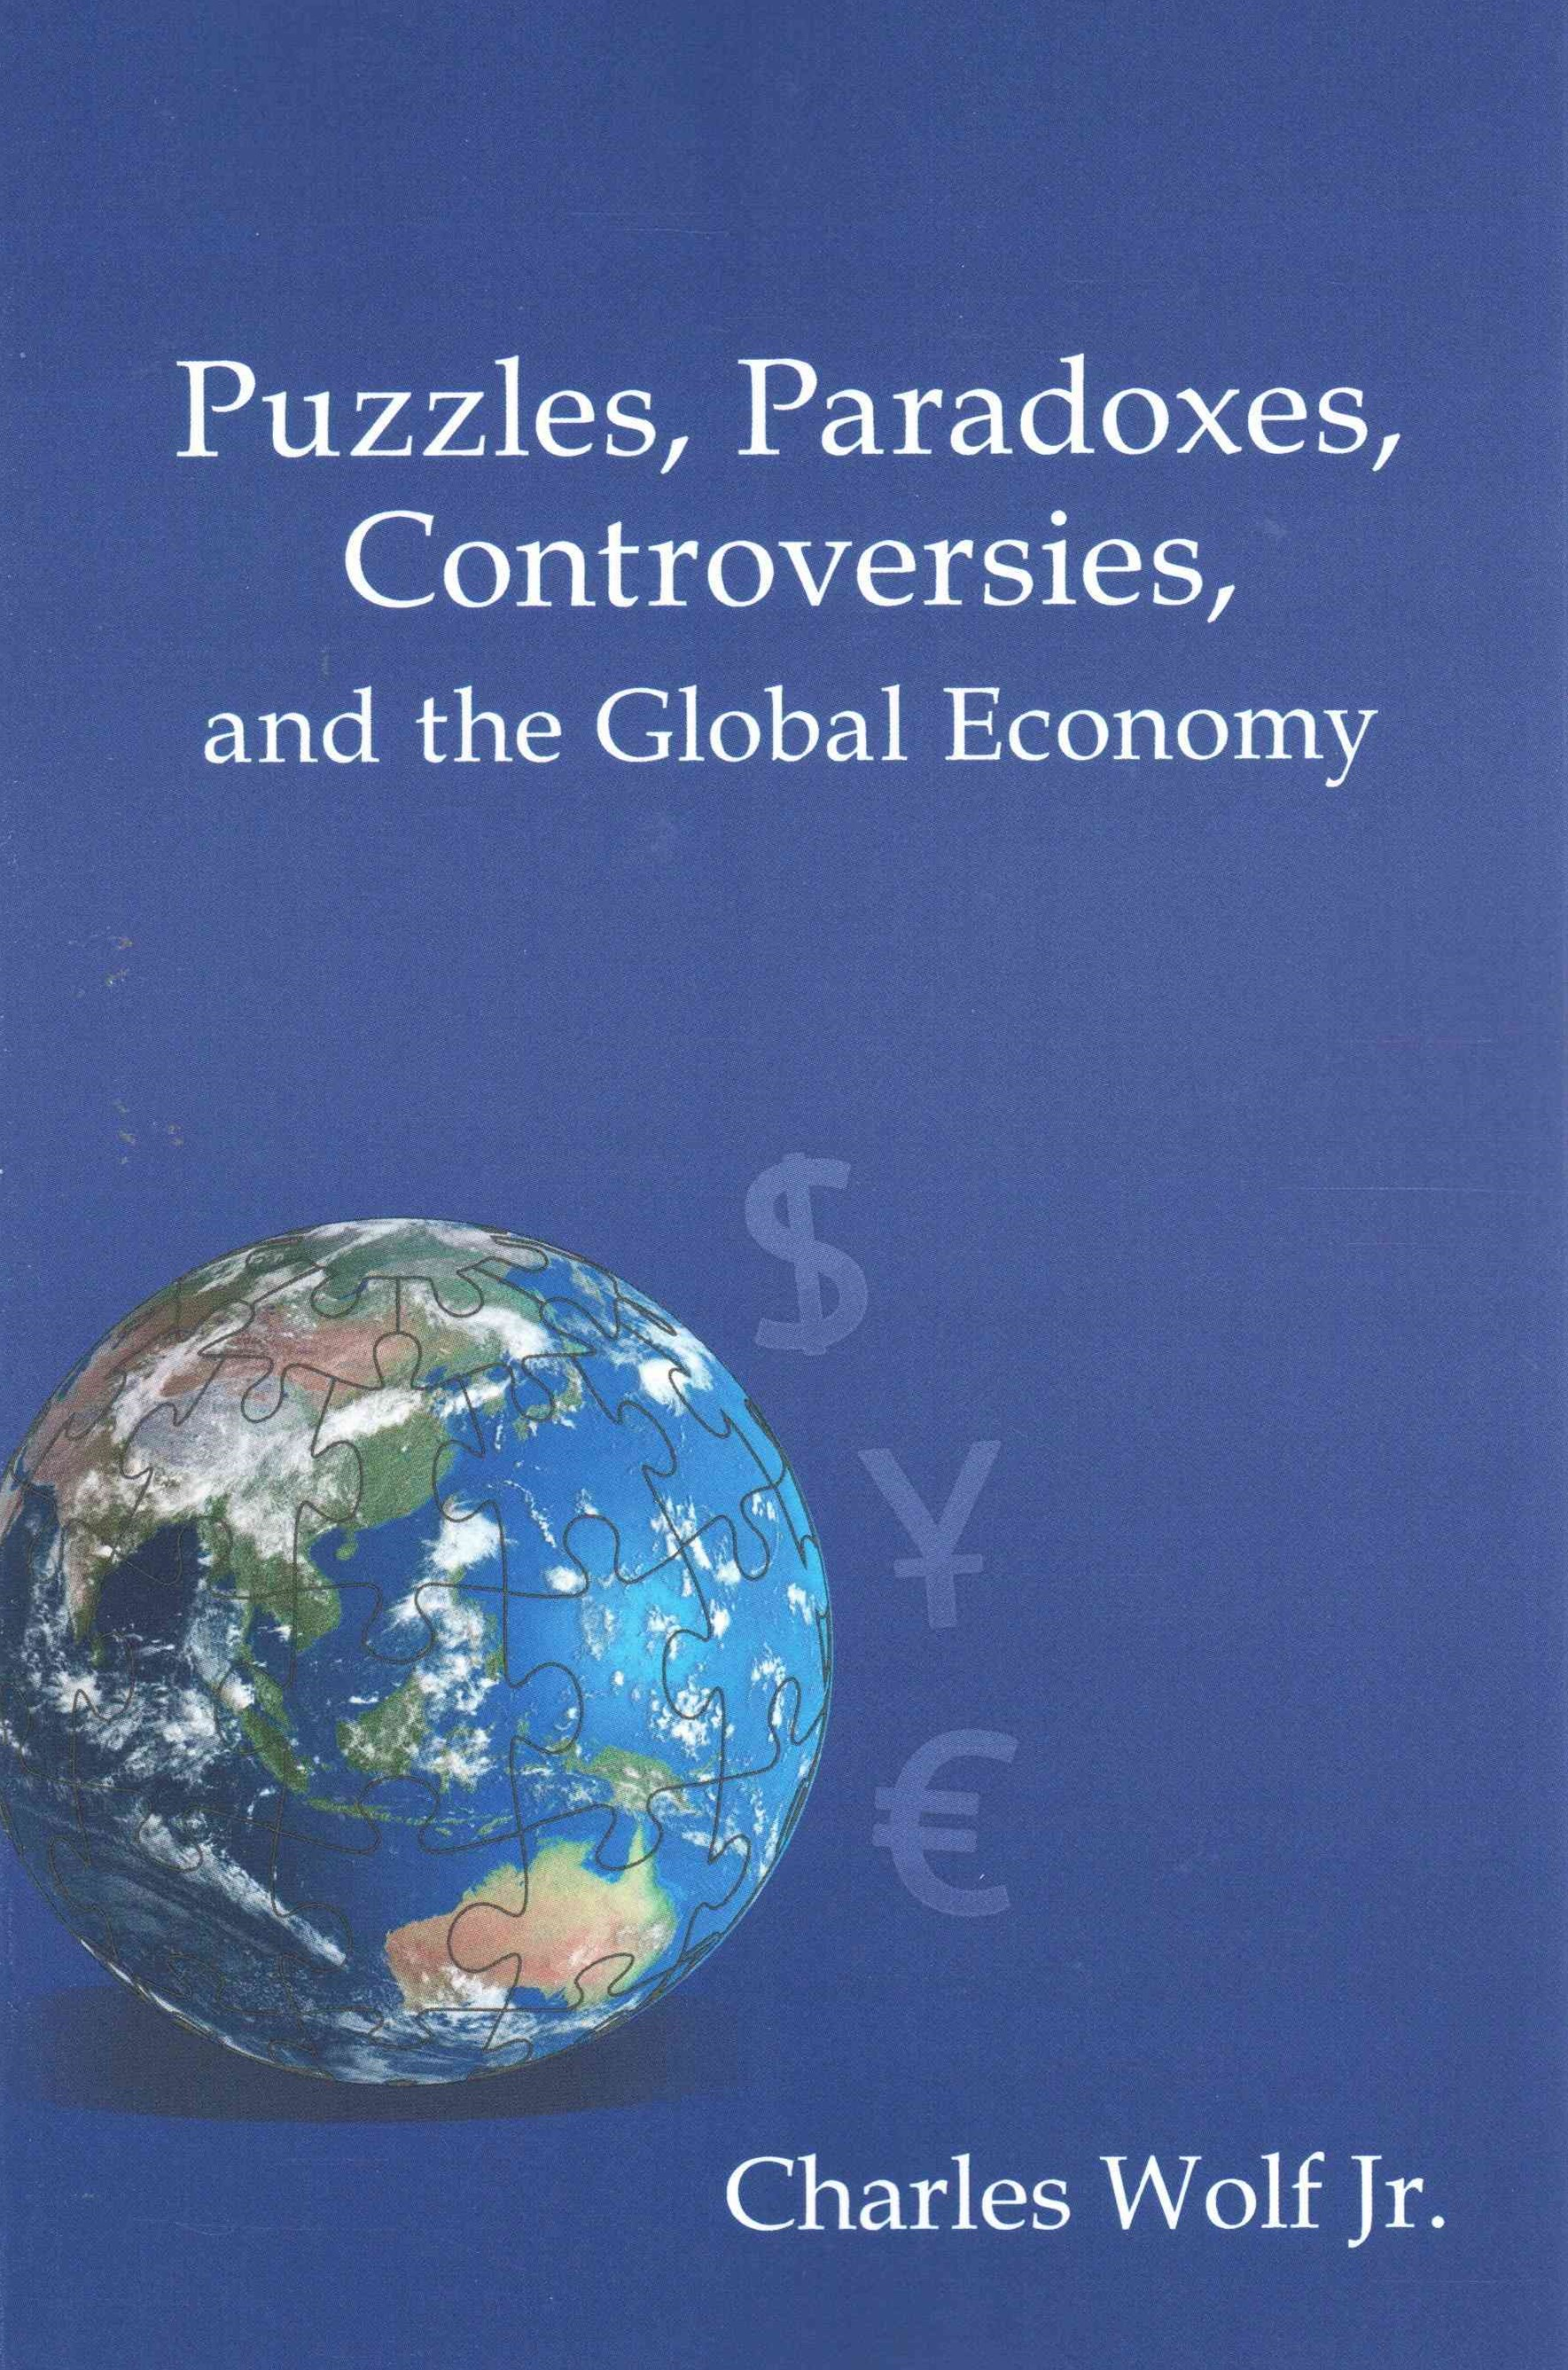 Puzzles, Paradoxes, Controversies, and the Global Economy